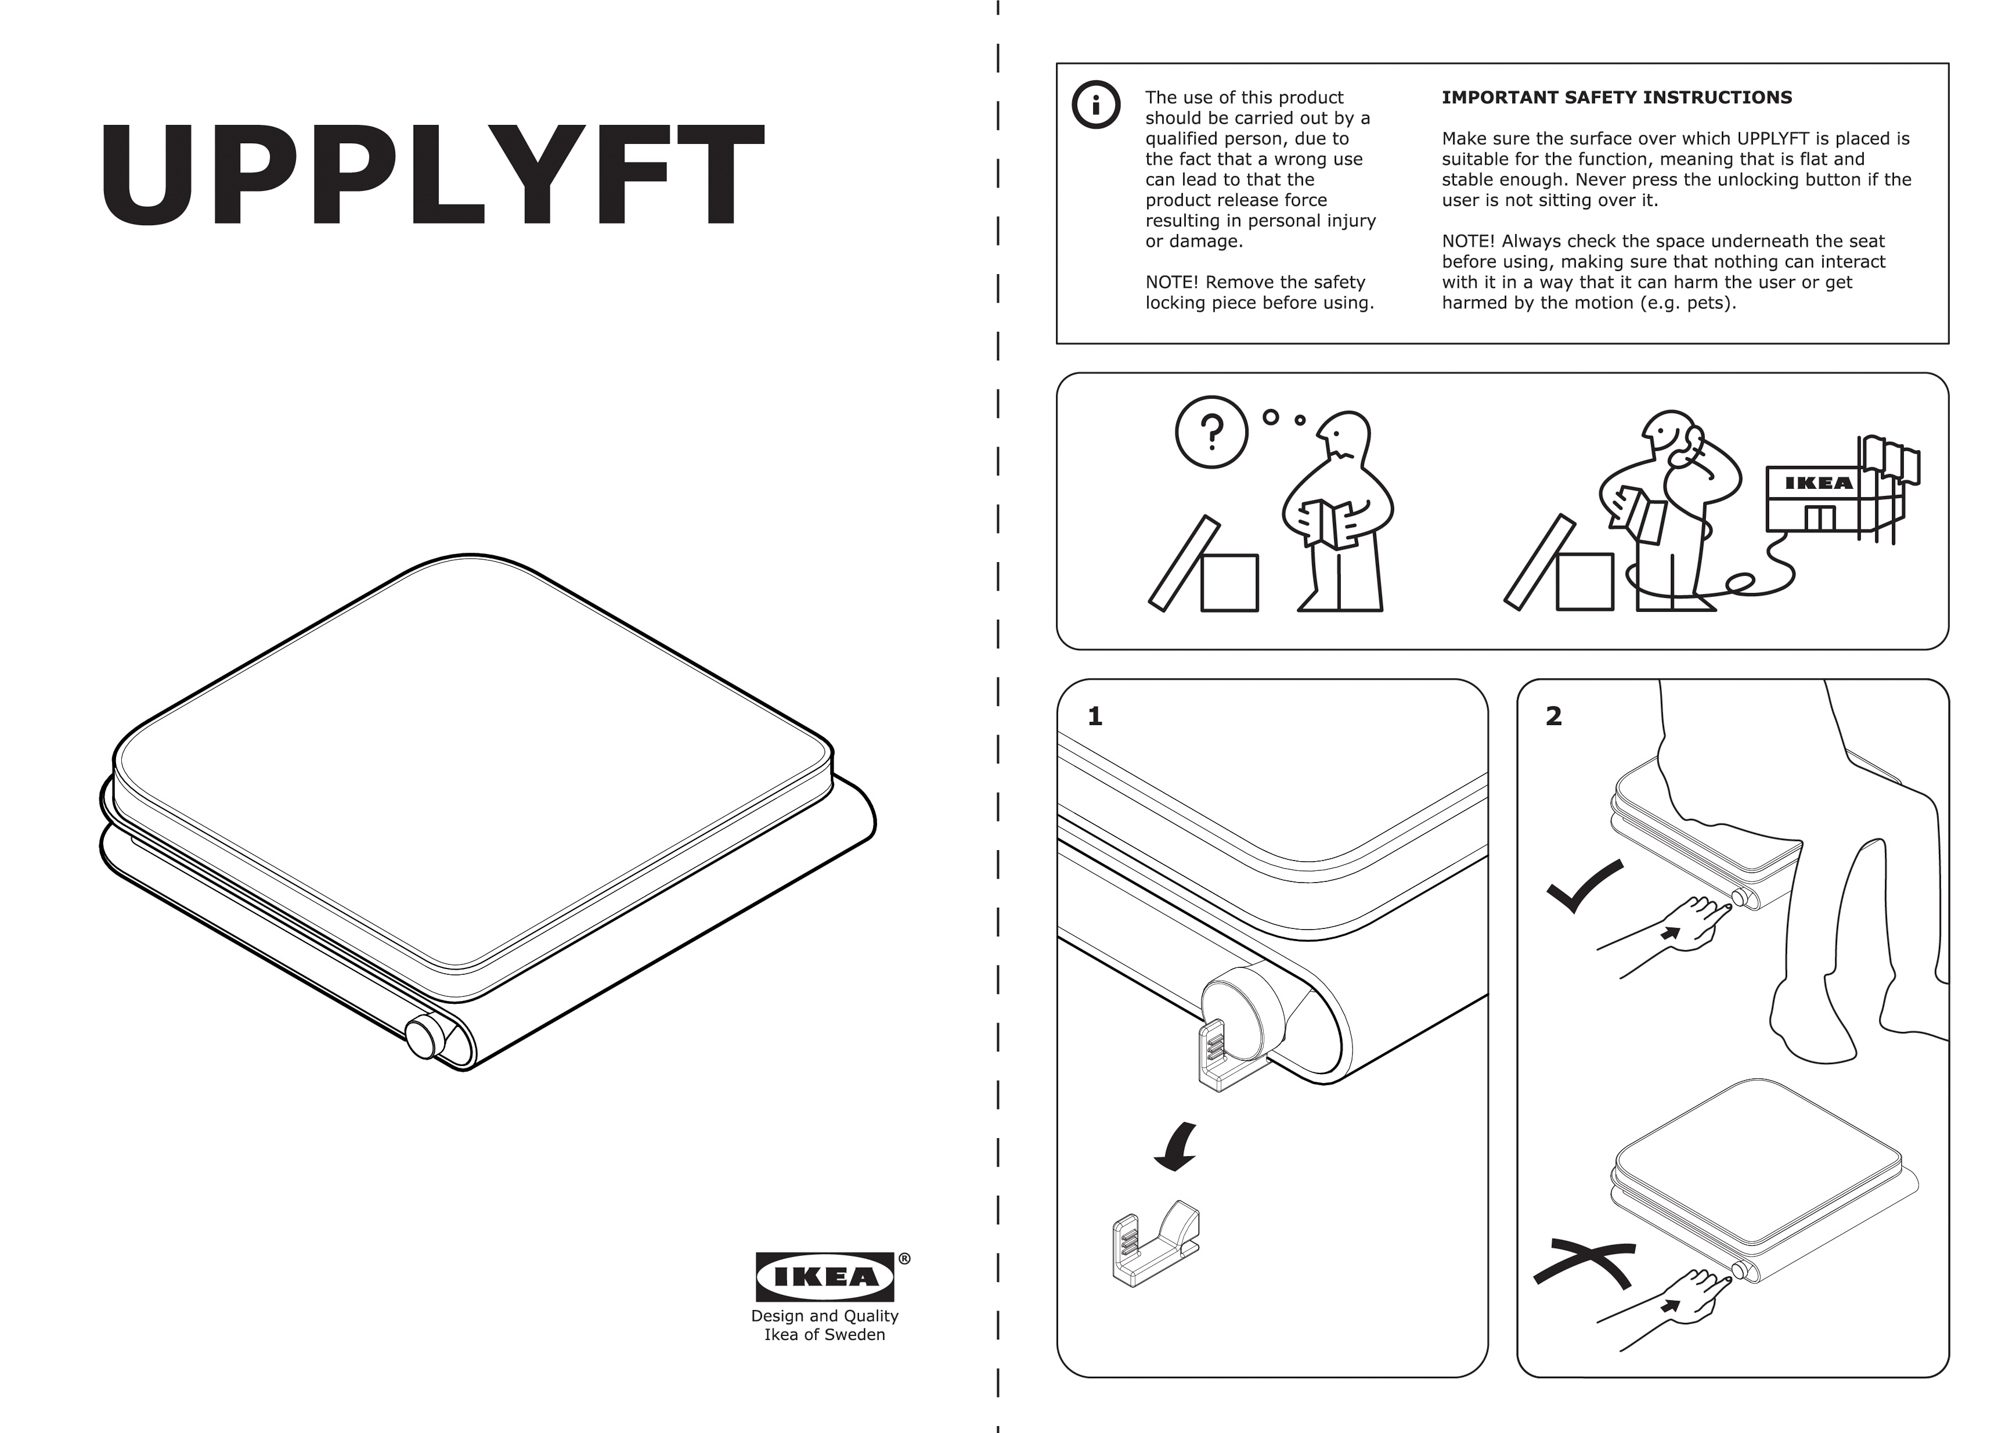 An IKEA instruction manual for the portable assistive seat